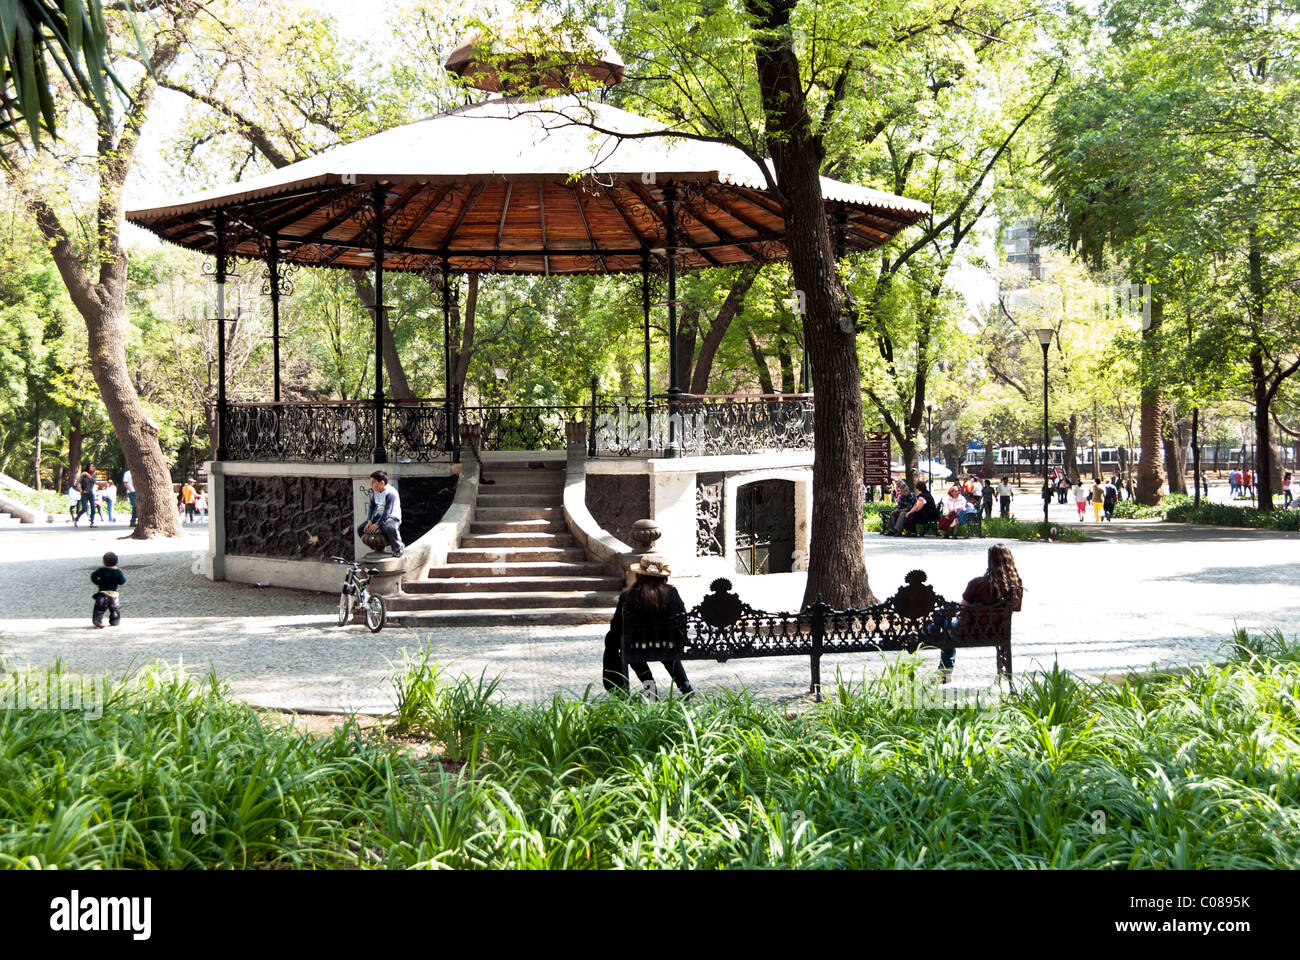 charming old 19th century bandstand amid greenery of Chapultepec Park with elaborate cast iron frame & wood - Stock Image